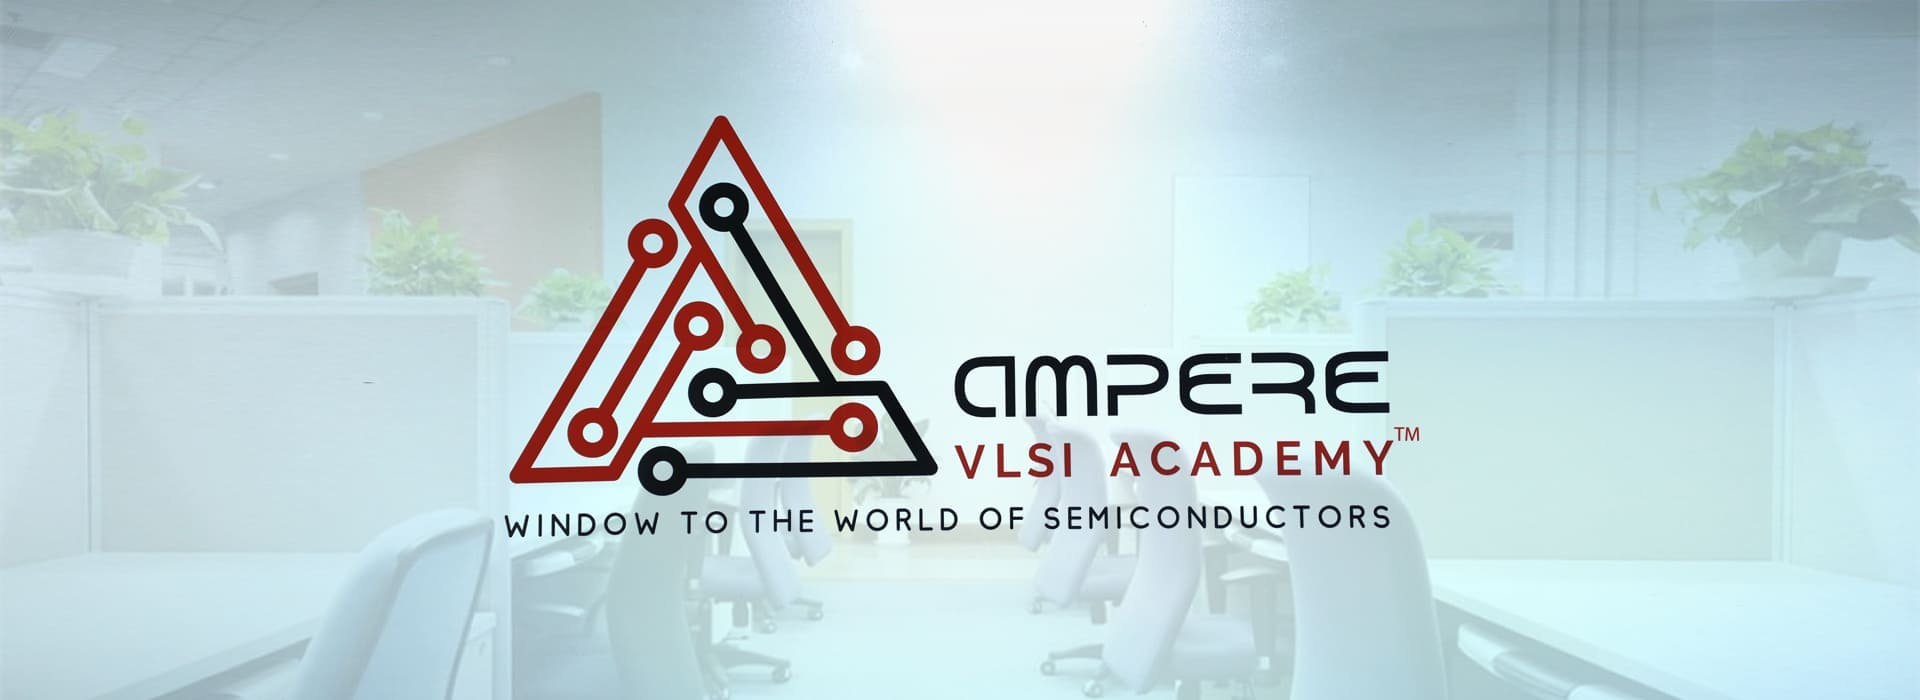 Ampere VLSI Training in Bangalore & Chennai